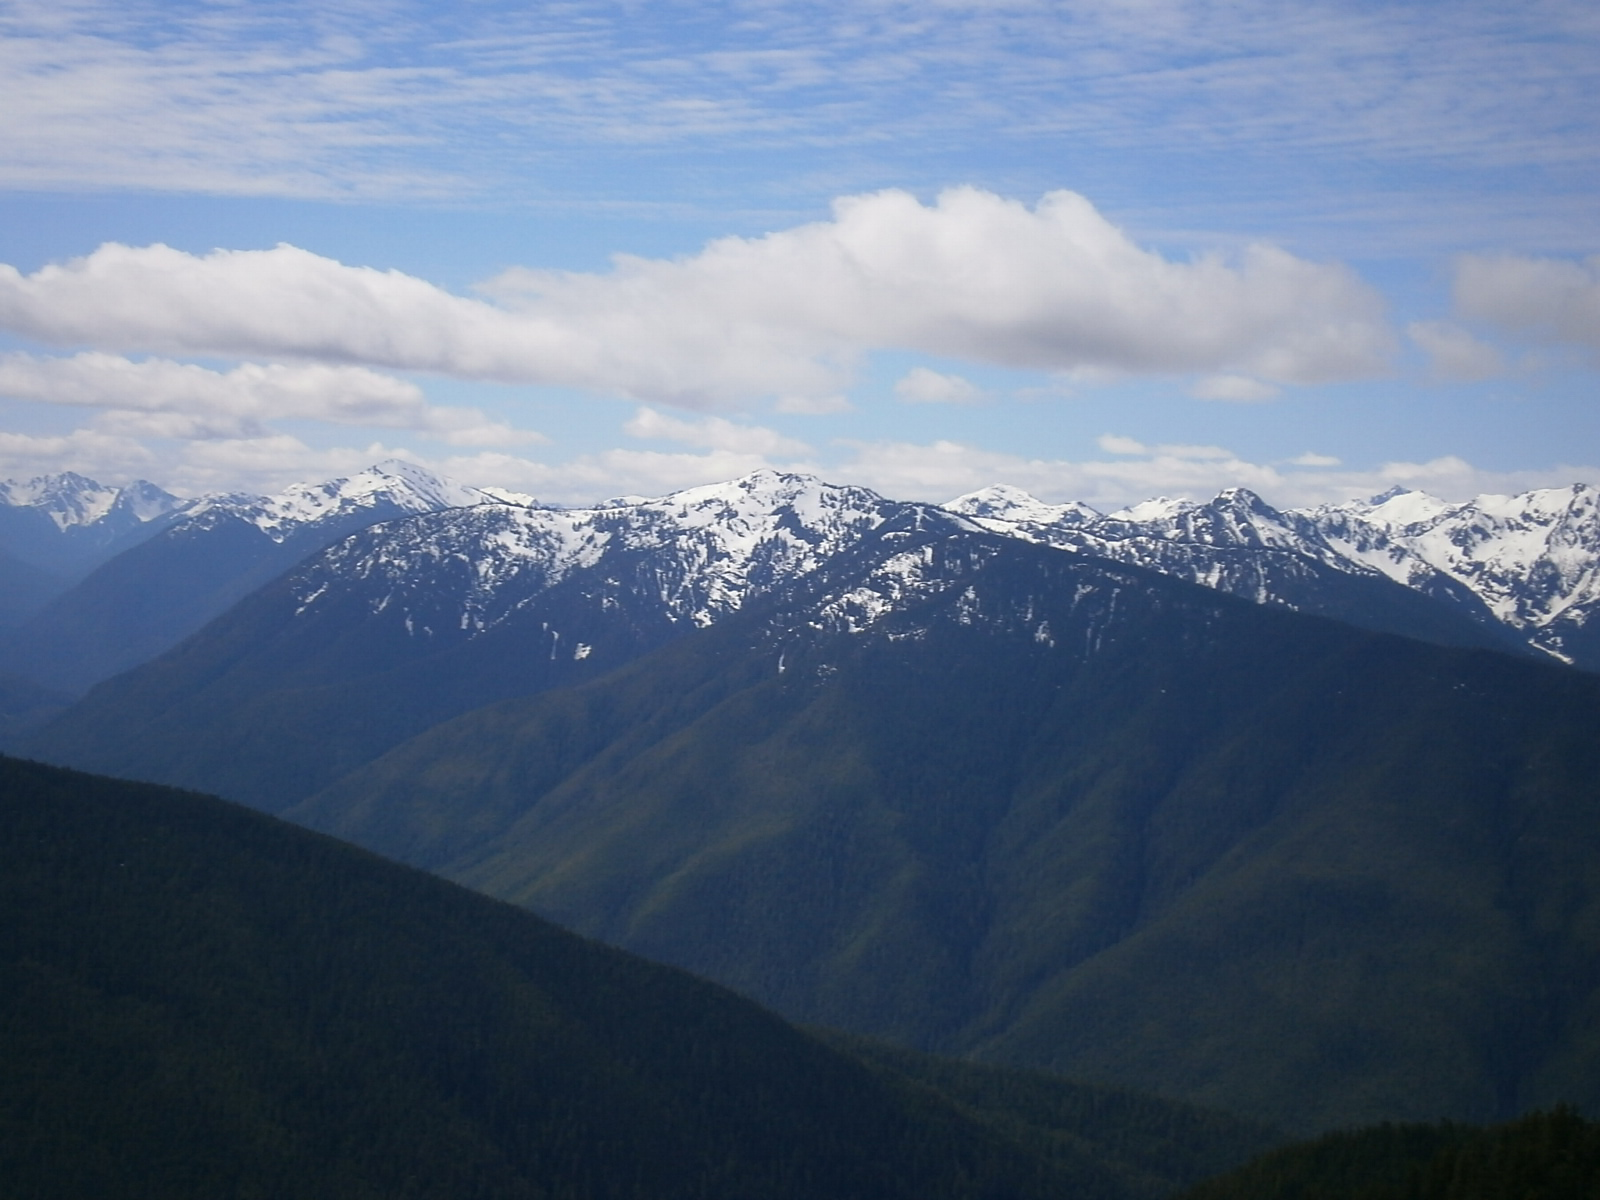 Day Trip on the Olympic Peninsula